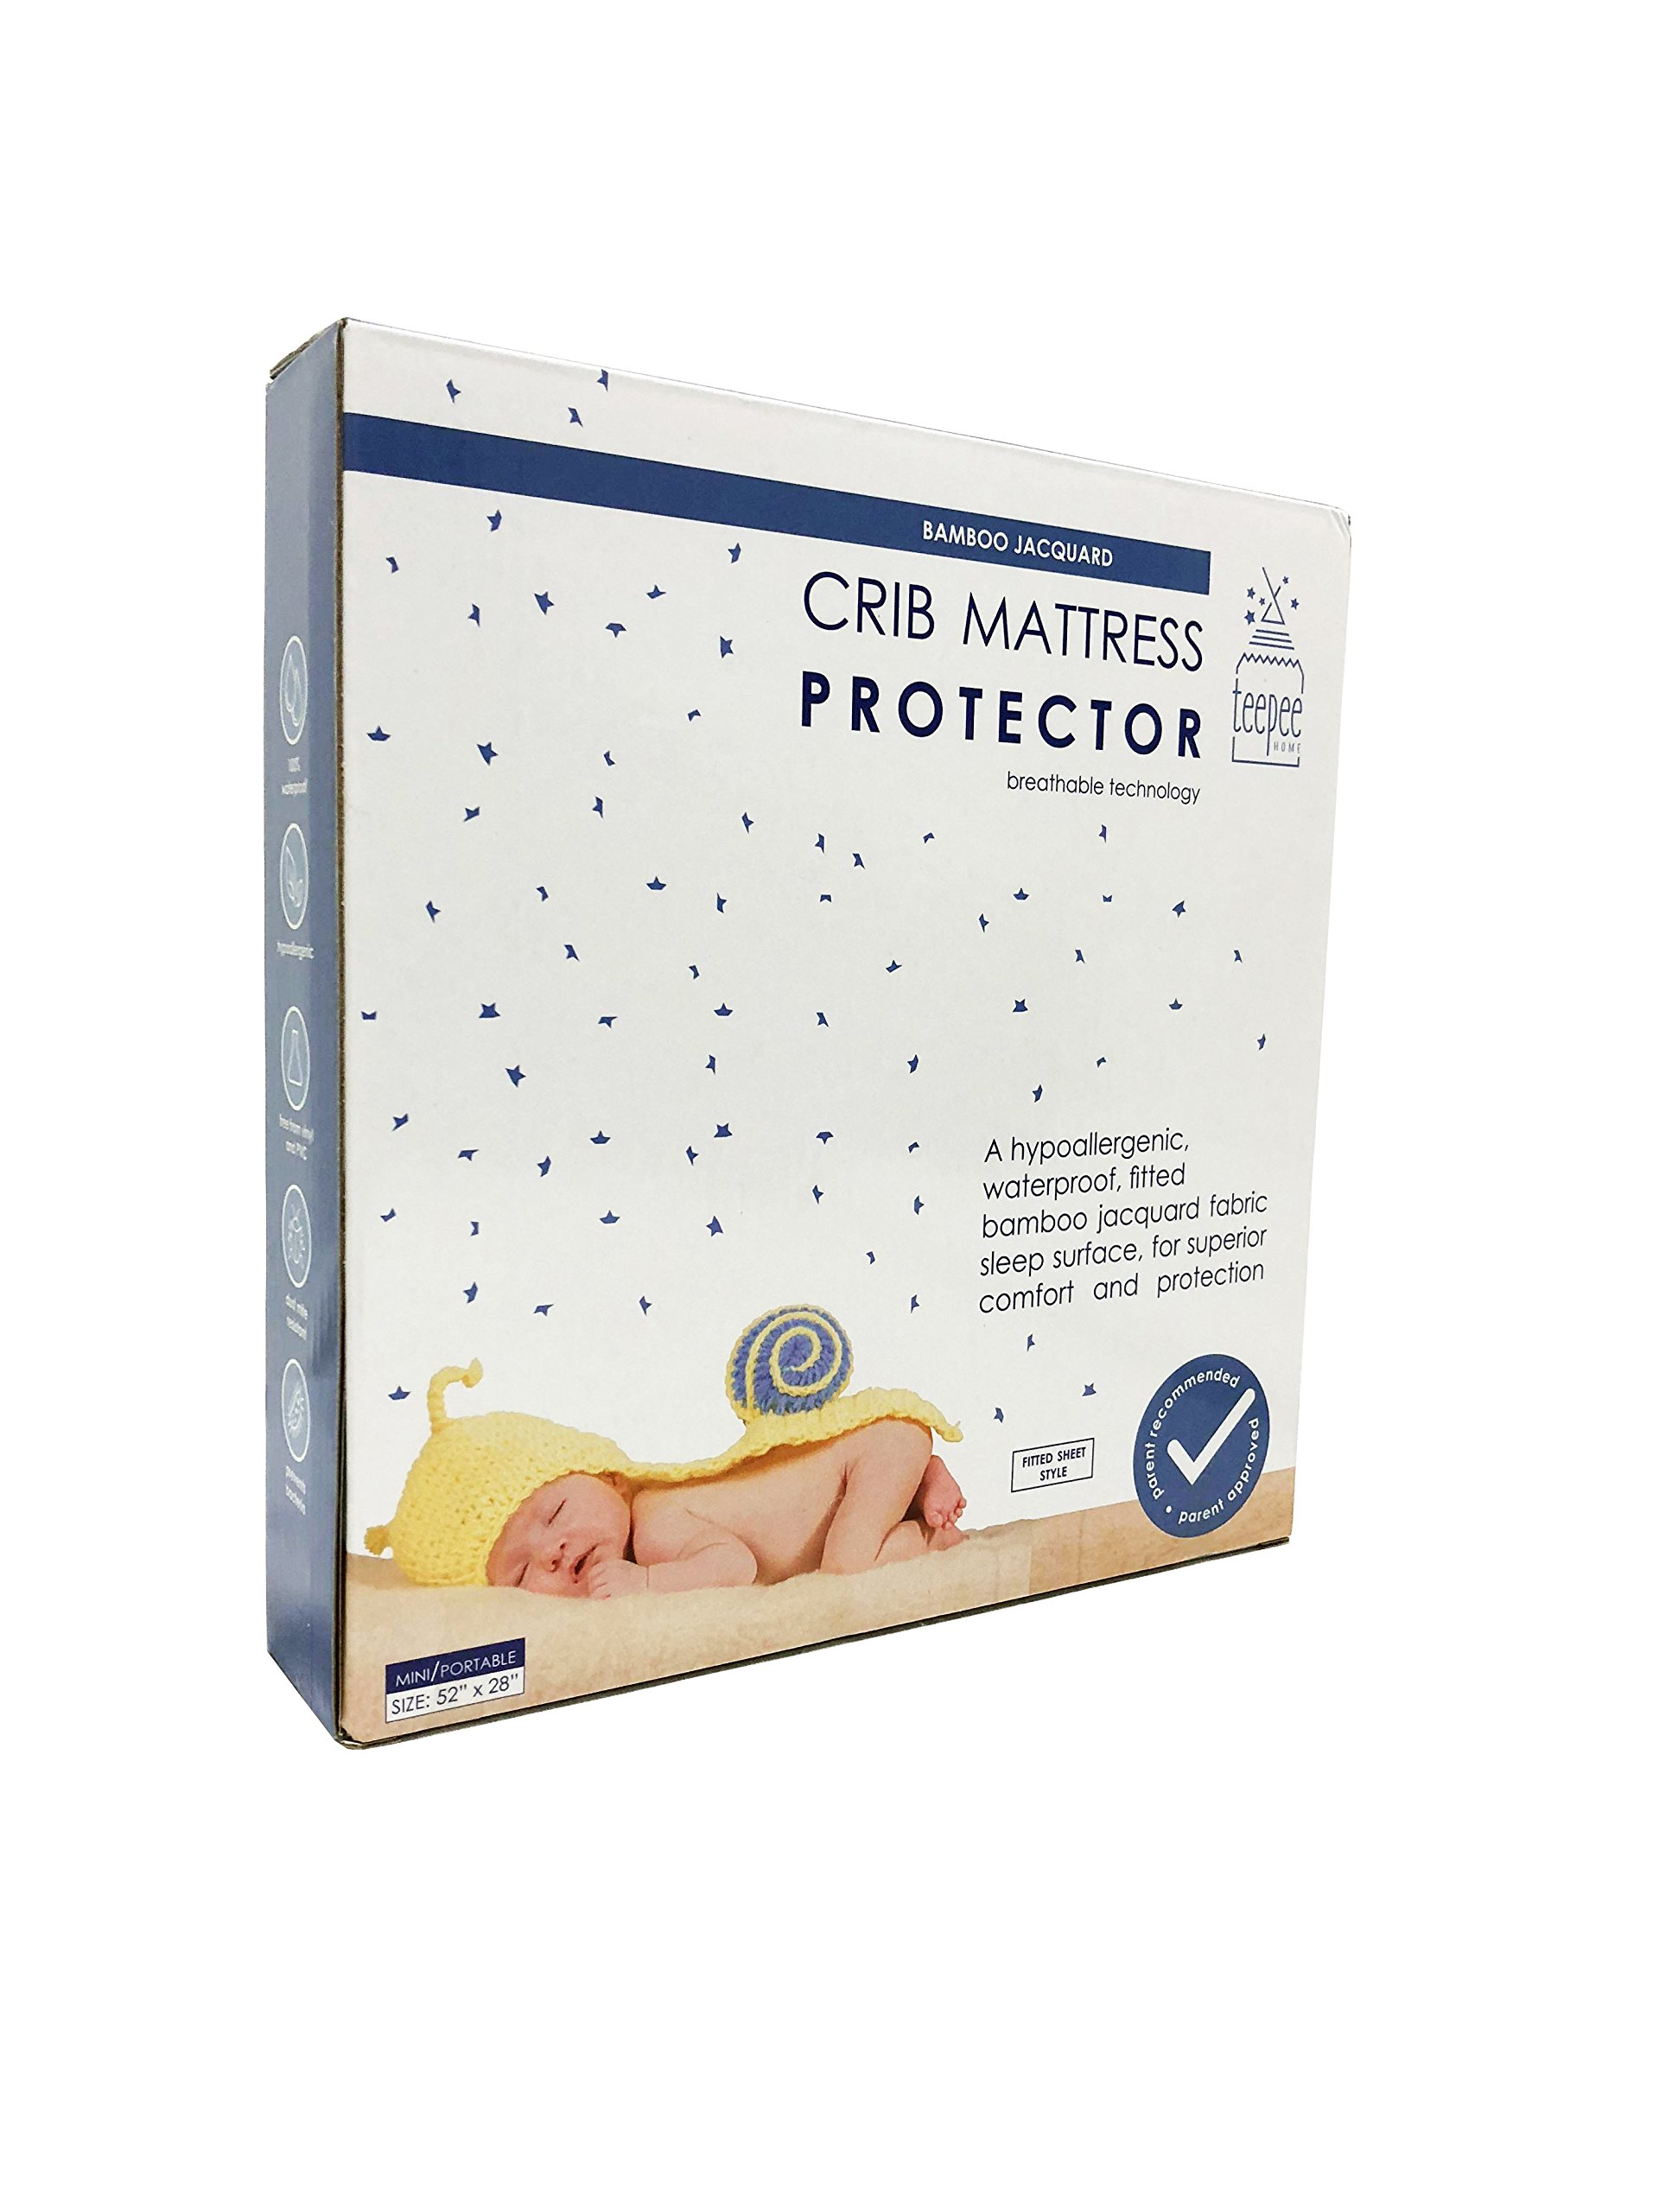 Waterproof Crib Mattress Protector -100% Waterproof, Hypoallergenic, Premium Bamboo Jacquard Fabric, Dust Mite Resistant, Mini/Portable